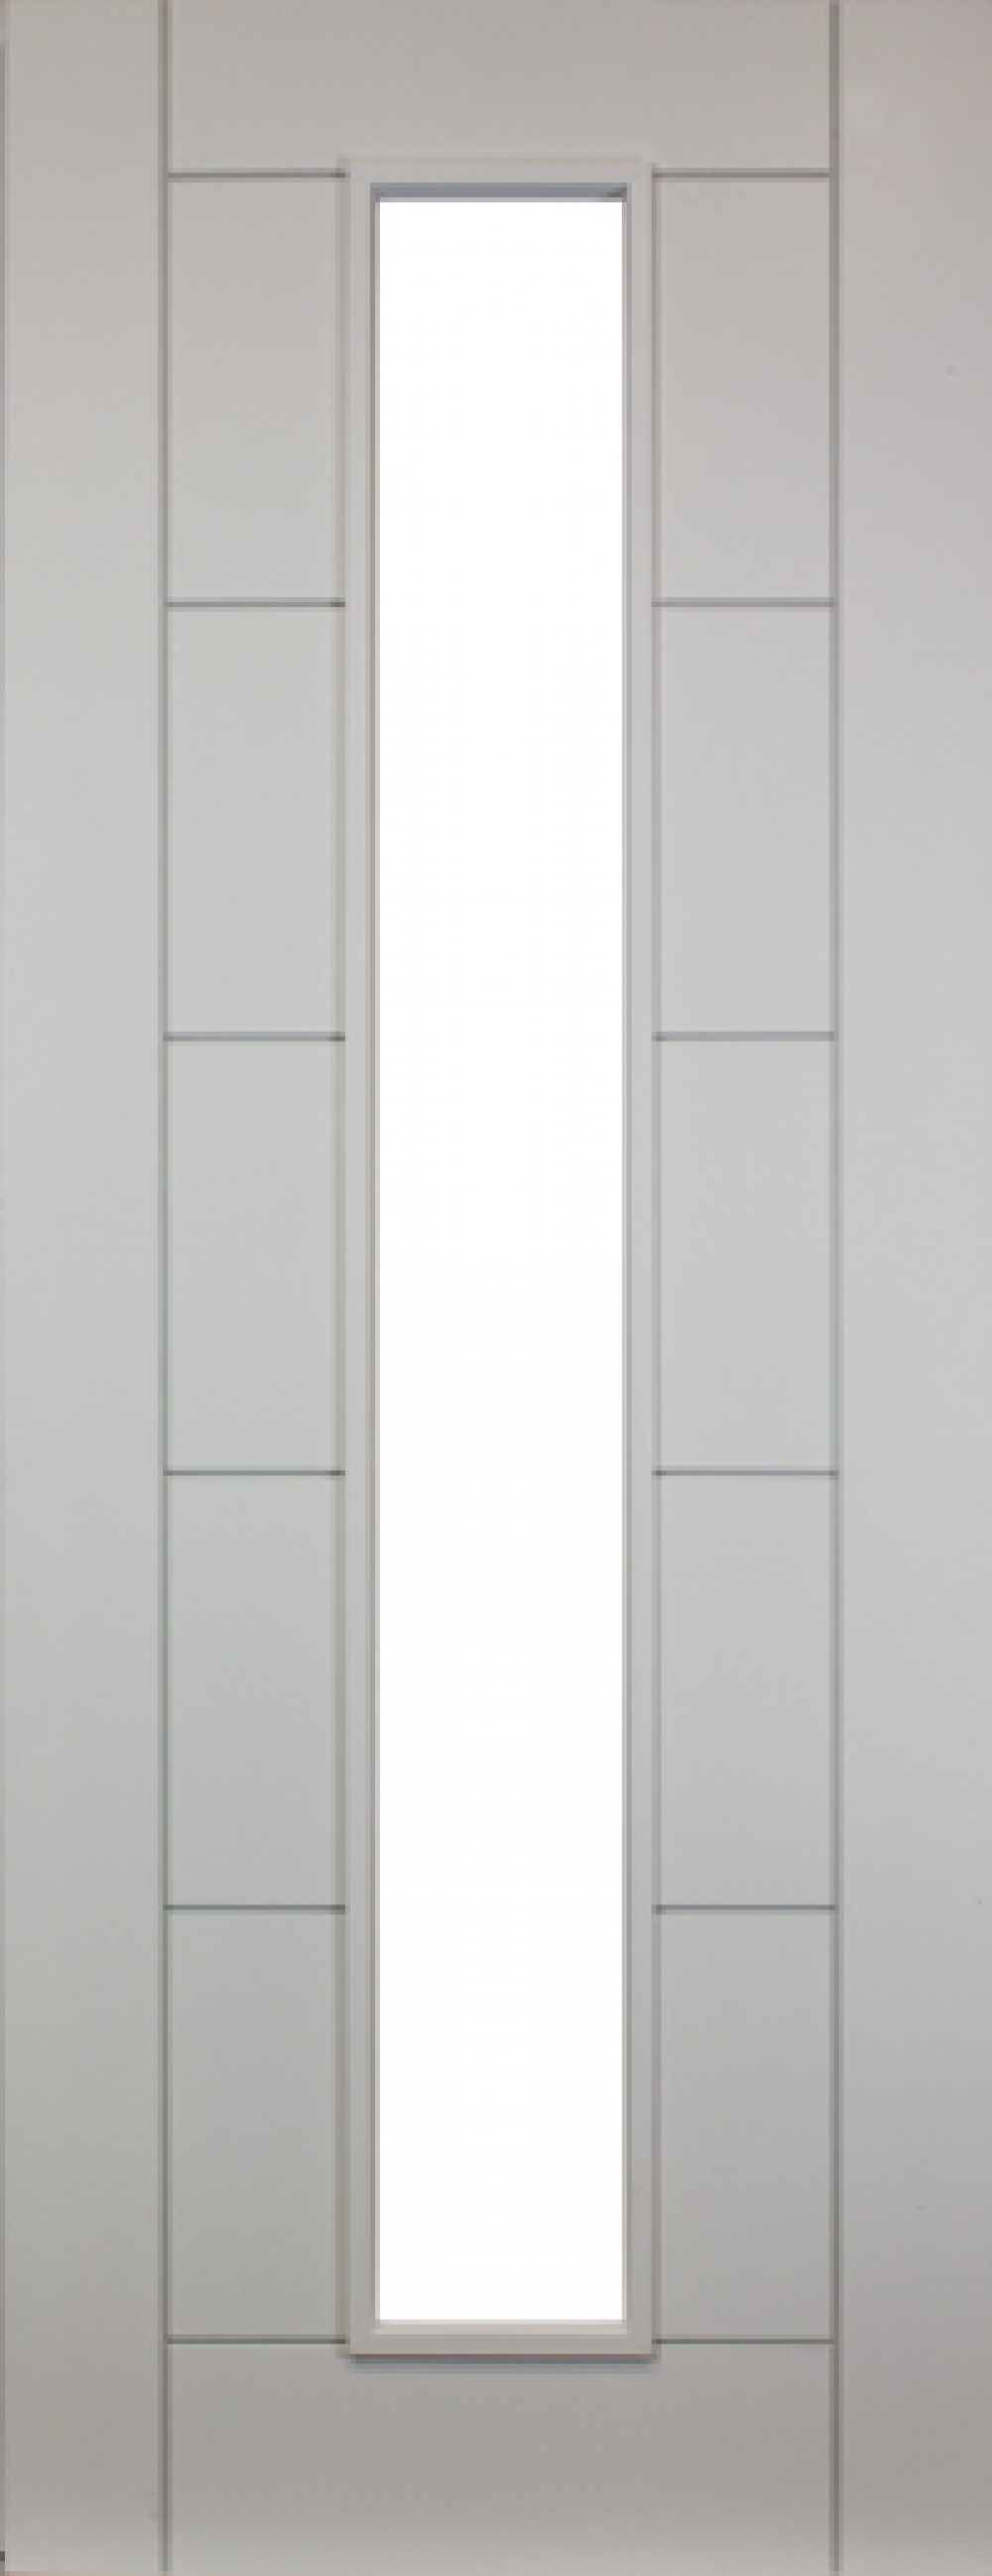 Seville White Primed Unglazed Door